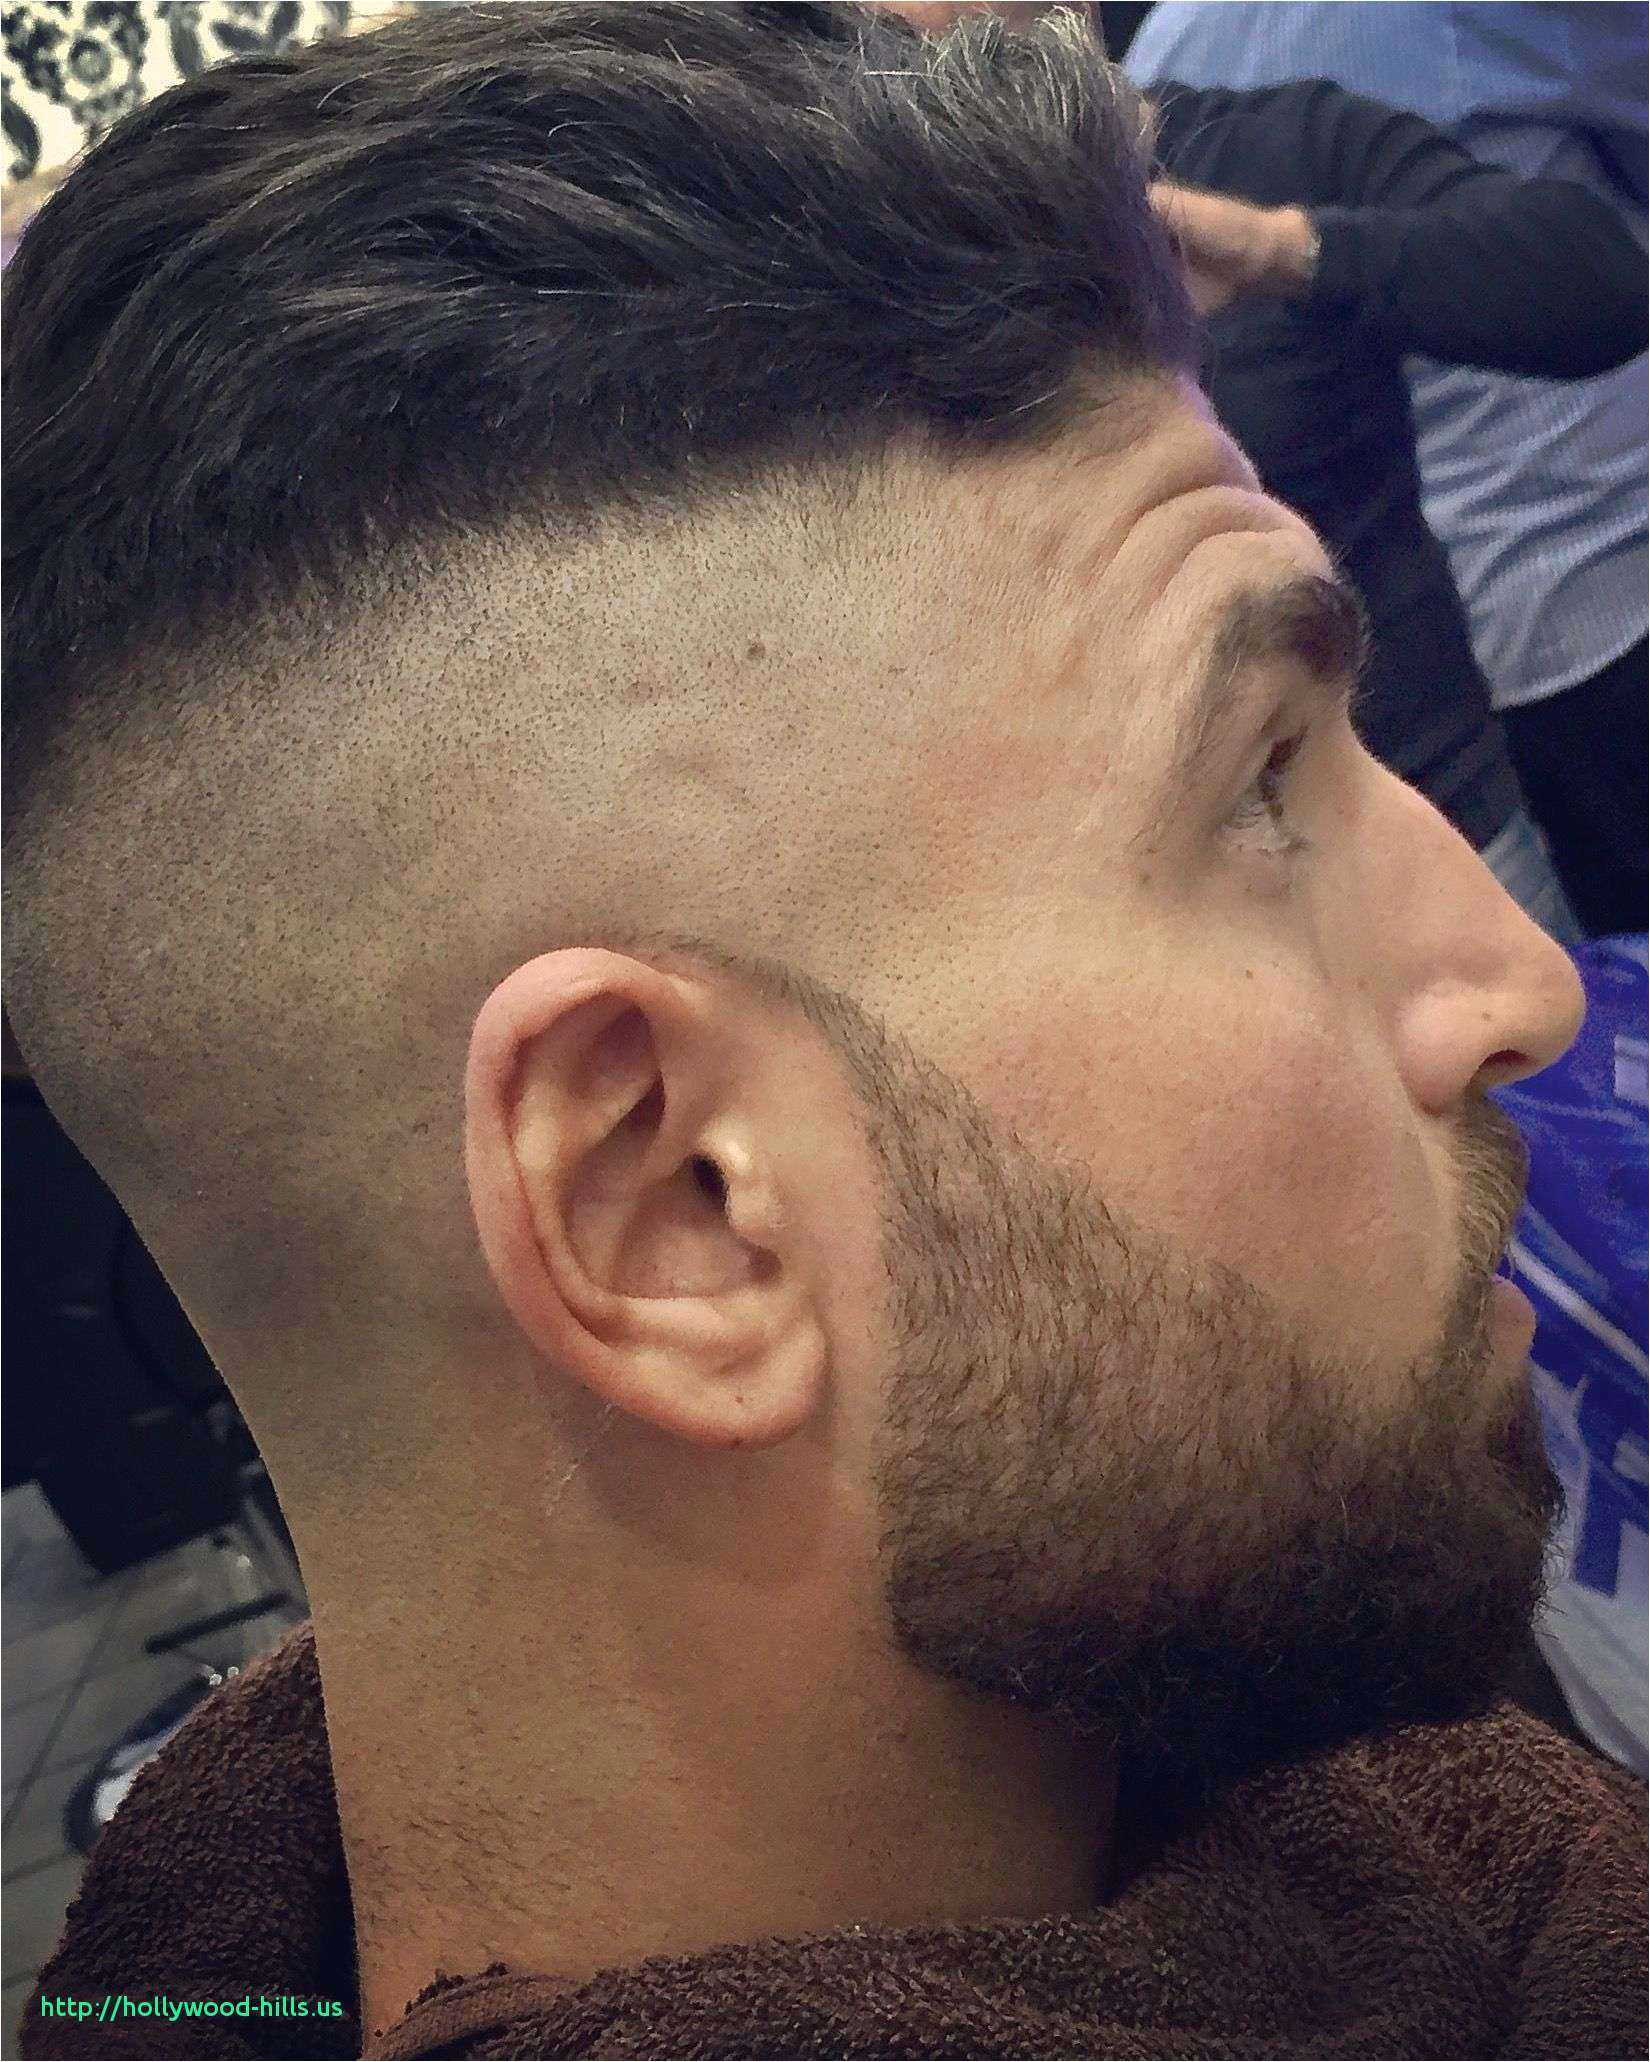 Long Hair Cuts for Men Unique Hairstyles for Men with Long Hair Beautiful Amusing New Haircuts